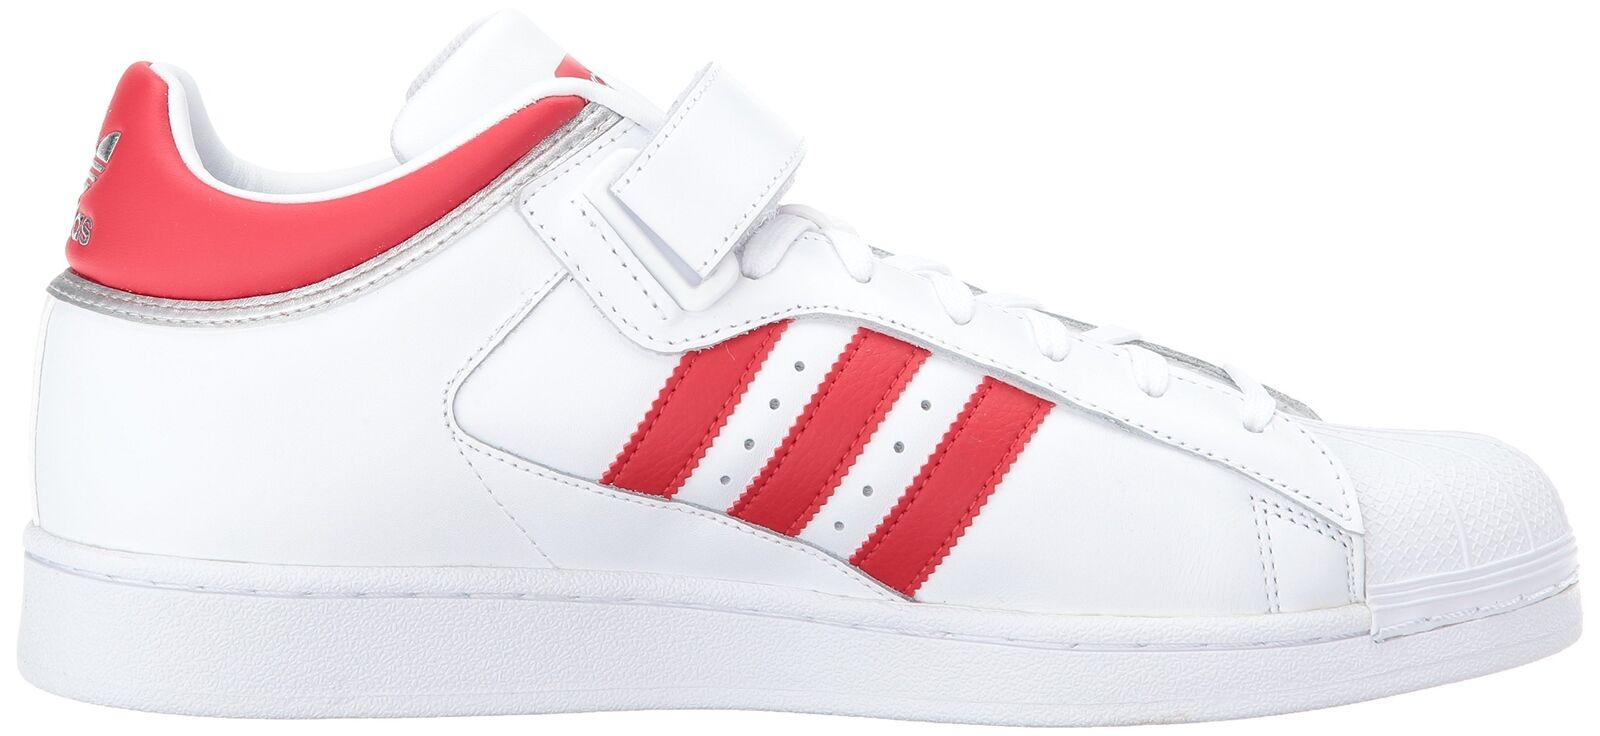 Adidas Originals Men's Pro Shell Fashion Sneaker